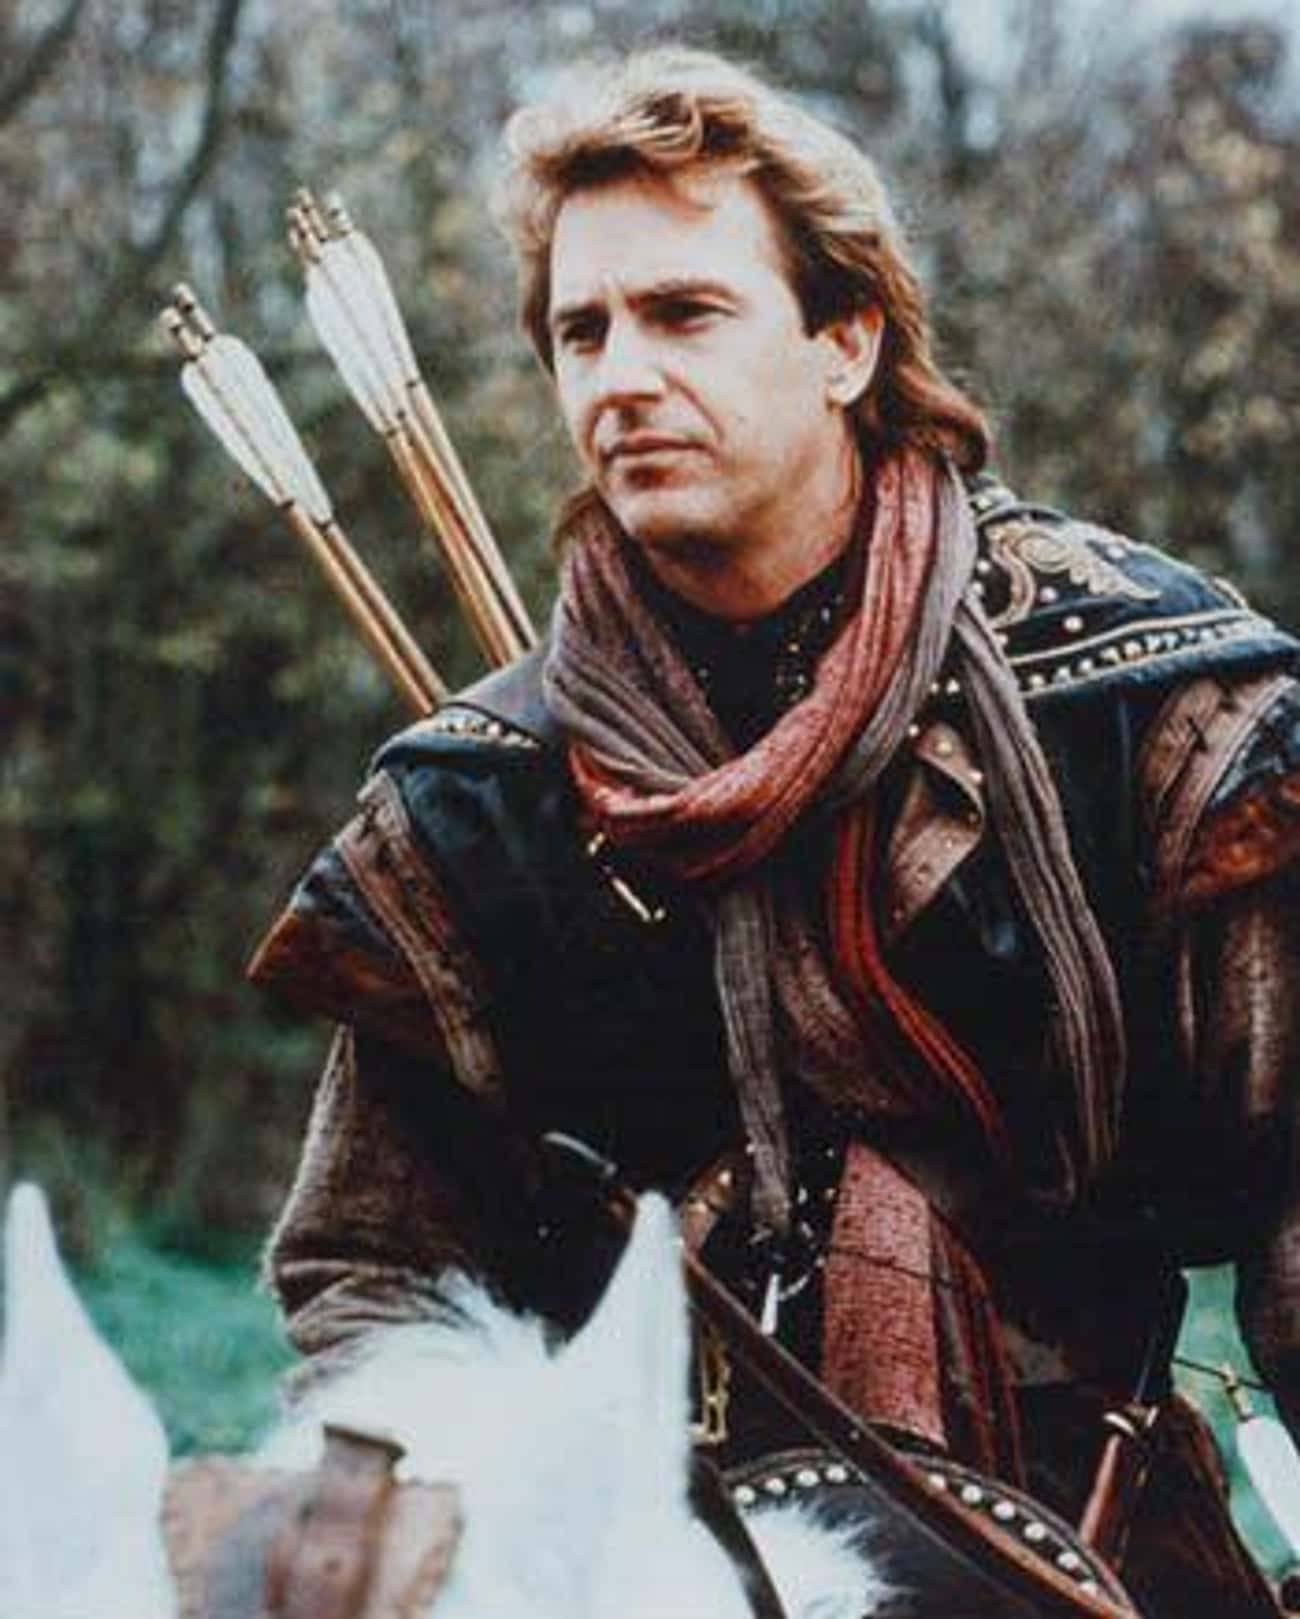 Kevin Costner Broke His Nose R is listed (or ranked) 2 on the list Behind The Scenes of 'Robin Hood: Prince Of Thieves'